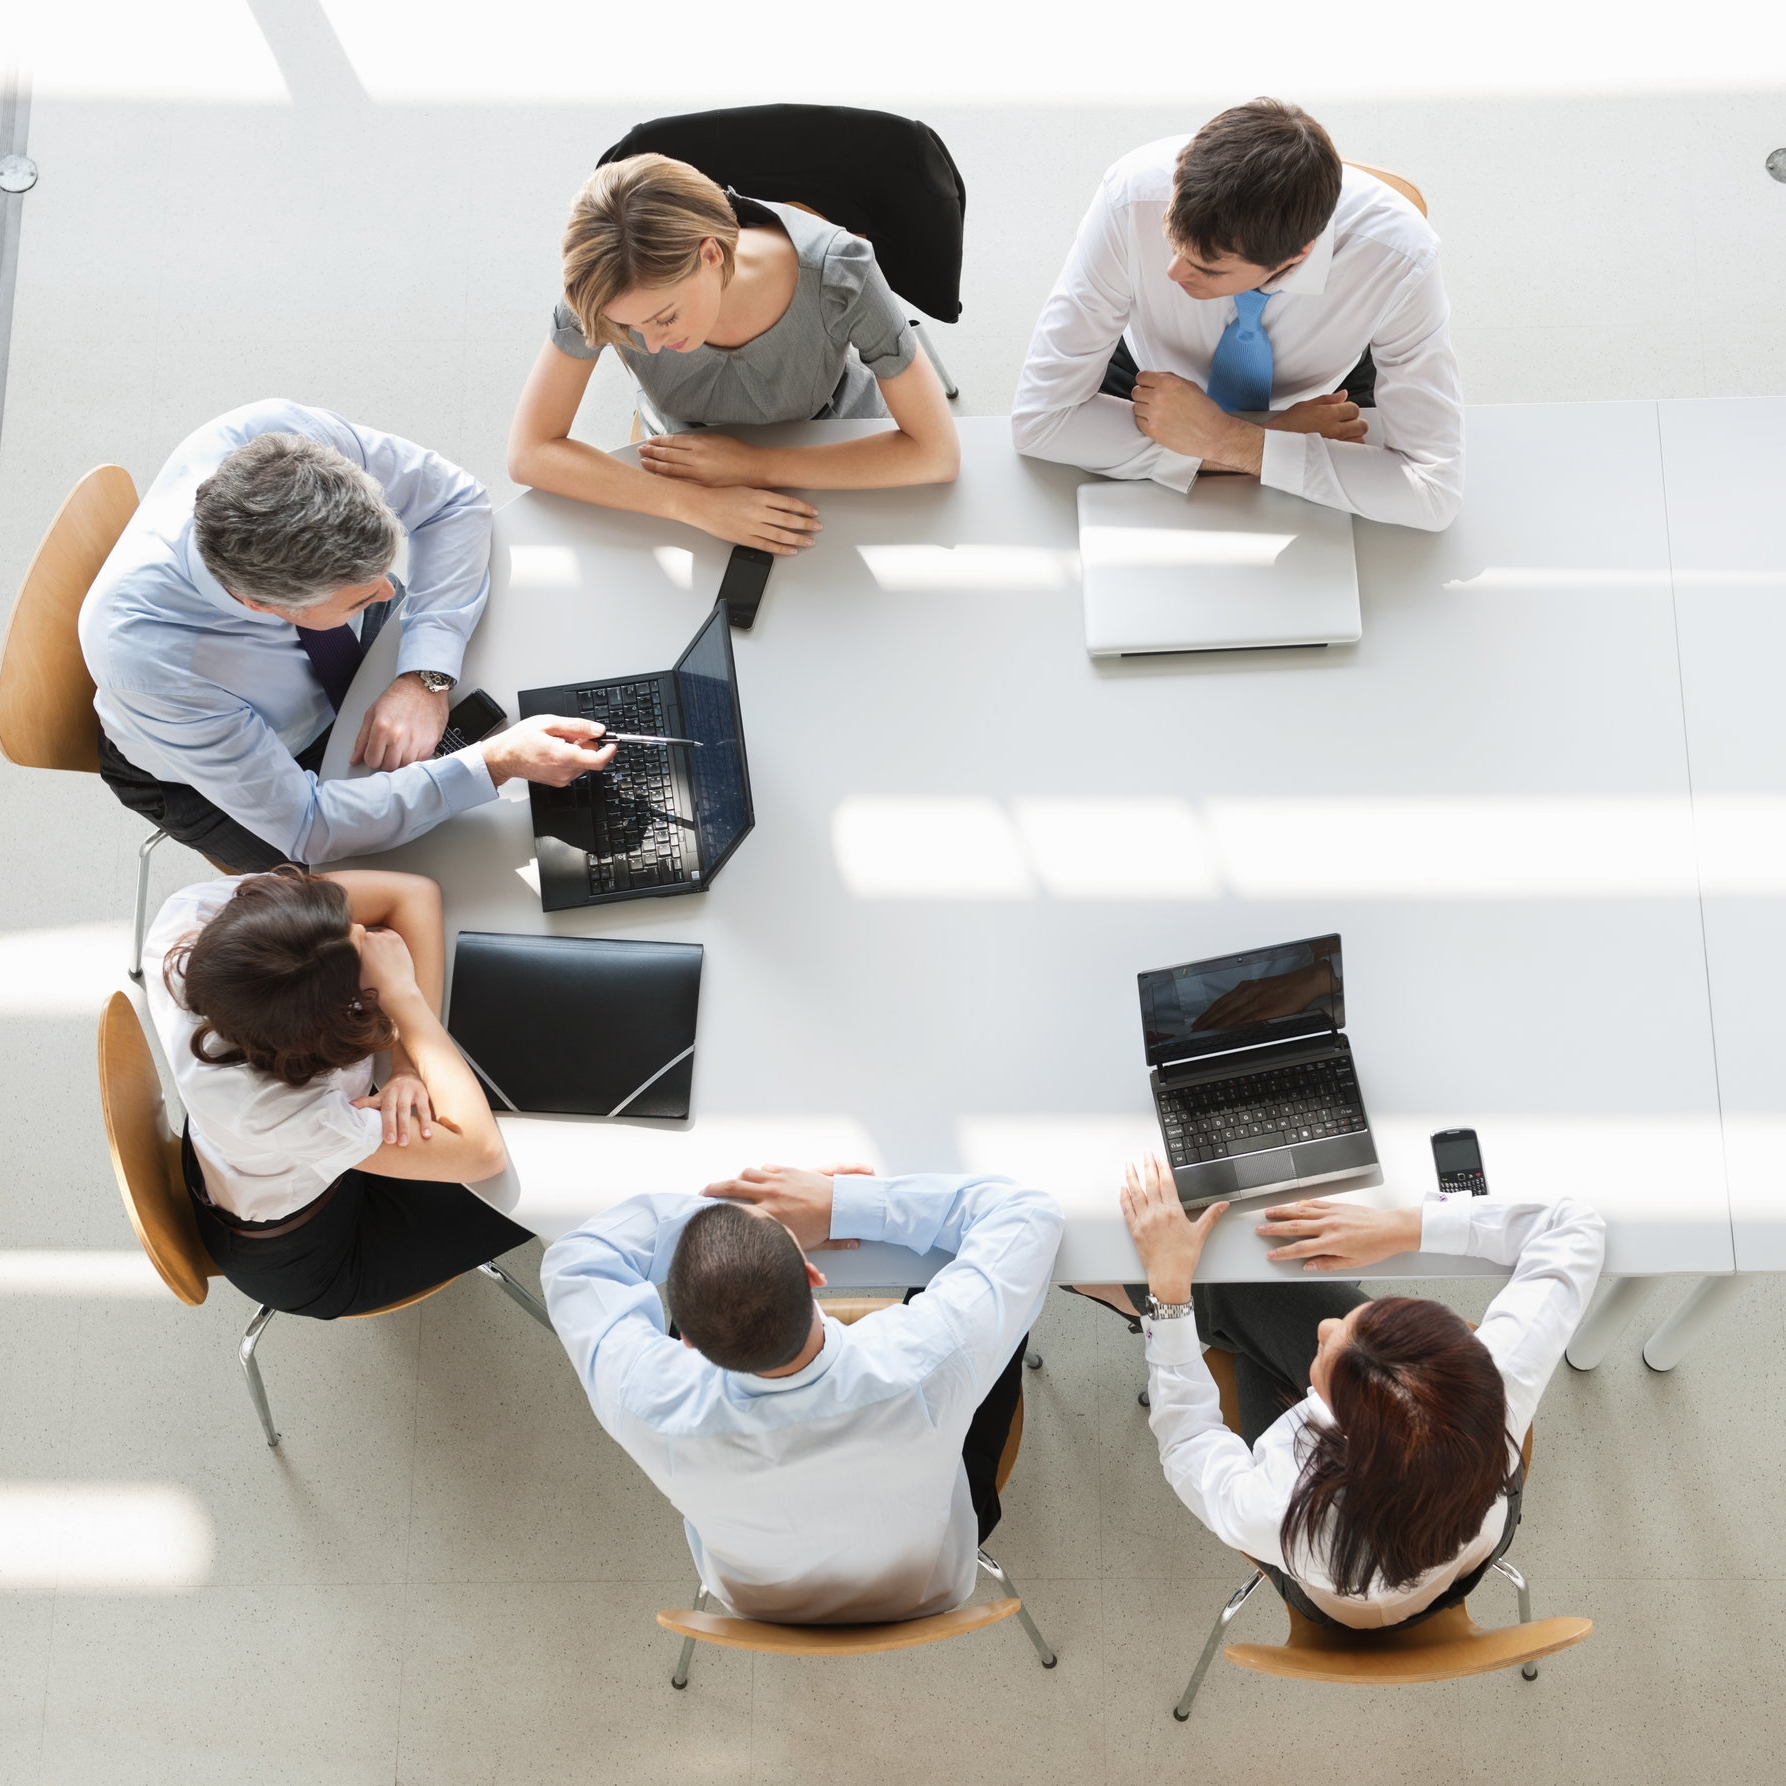 Overhead-view-of-business-people-in-a-meeting-155391664_5645x4032.jpeg